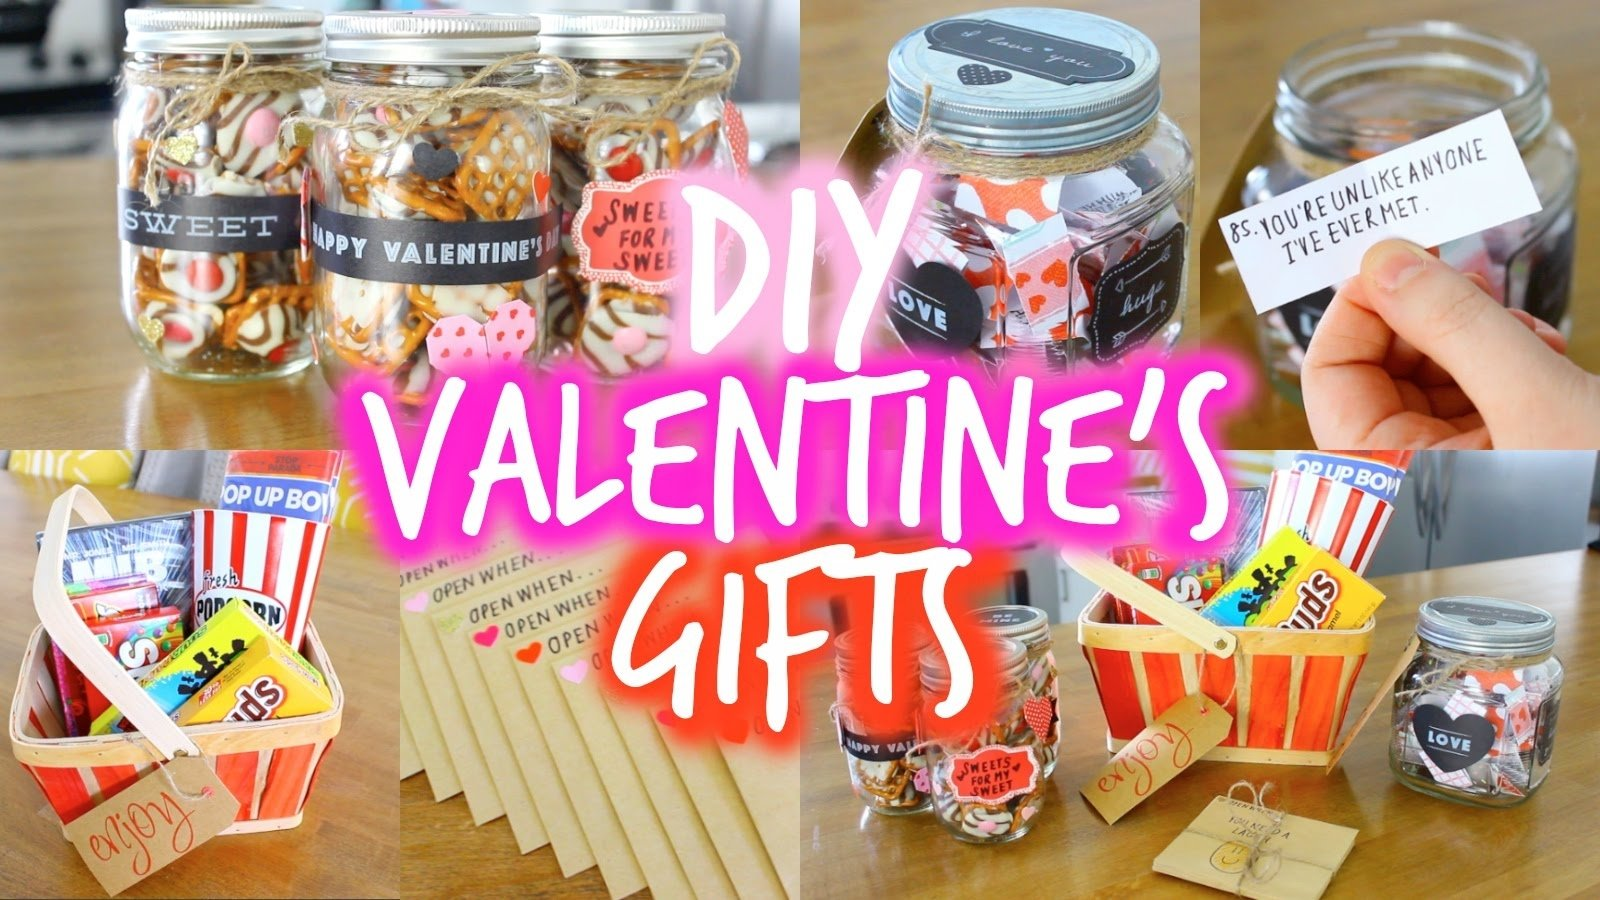 10 Fashionable Ideas For Boyfriend For Valentines Day easy diy valentines day gift ideas for your boyfriend youtube 36 2021